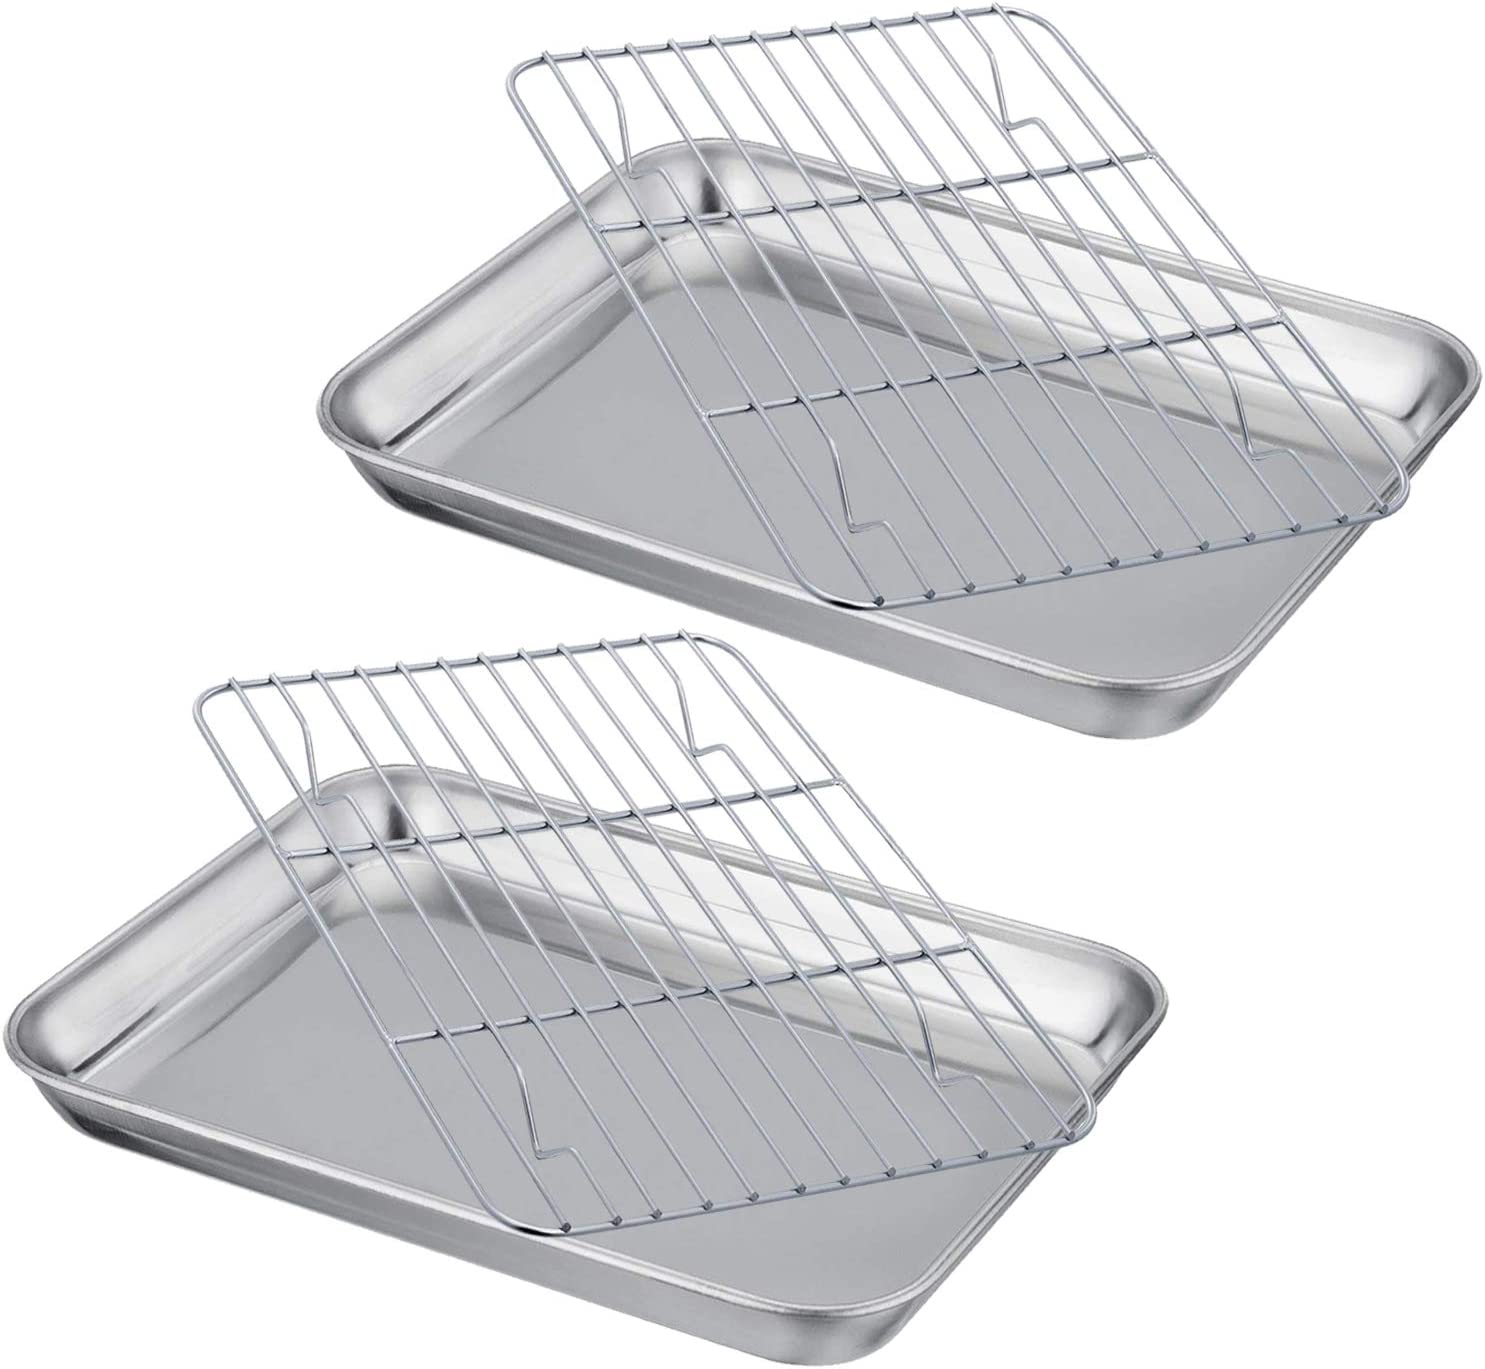 Coobbar Thickened Baking Sheet with Cooking Rack Set, Compact Stainless Steel Baking Pan and Cooling Rack, Heavy Duty Quality & Mirror Finish & Easy Clean & Dishwasher Safe (2 sets, 4 pieces)